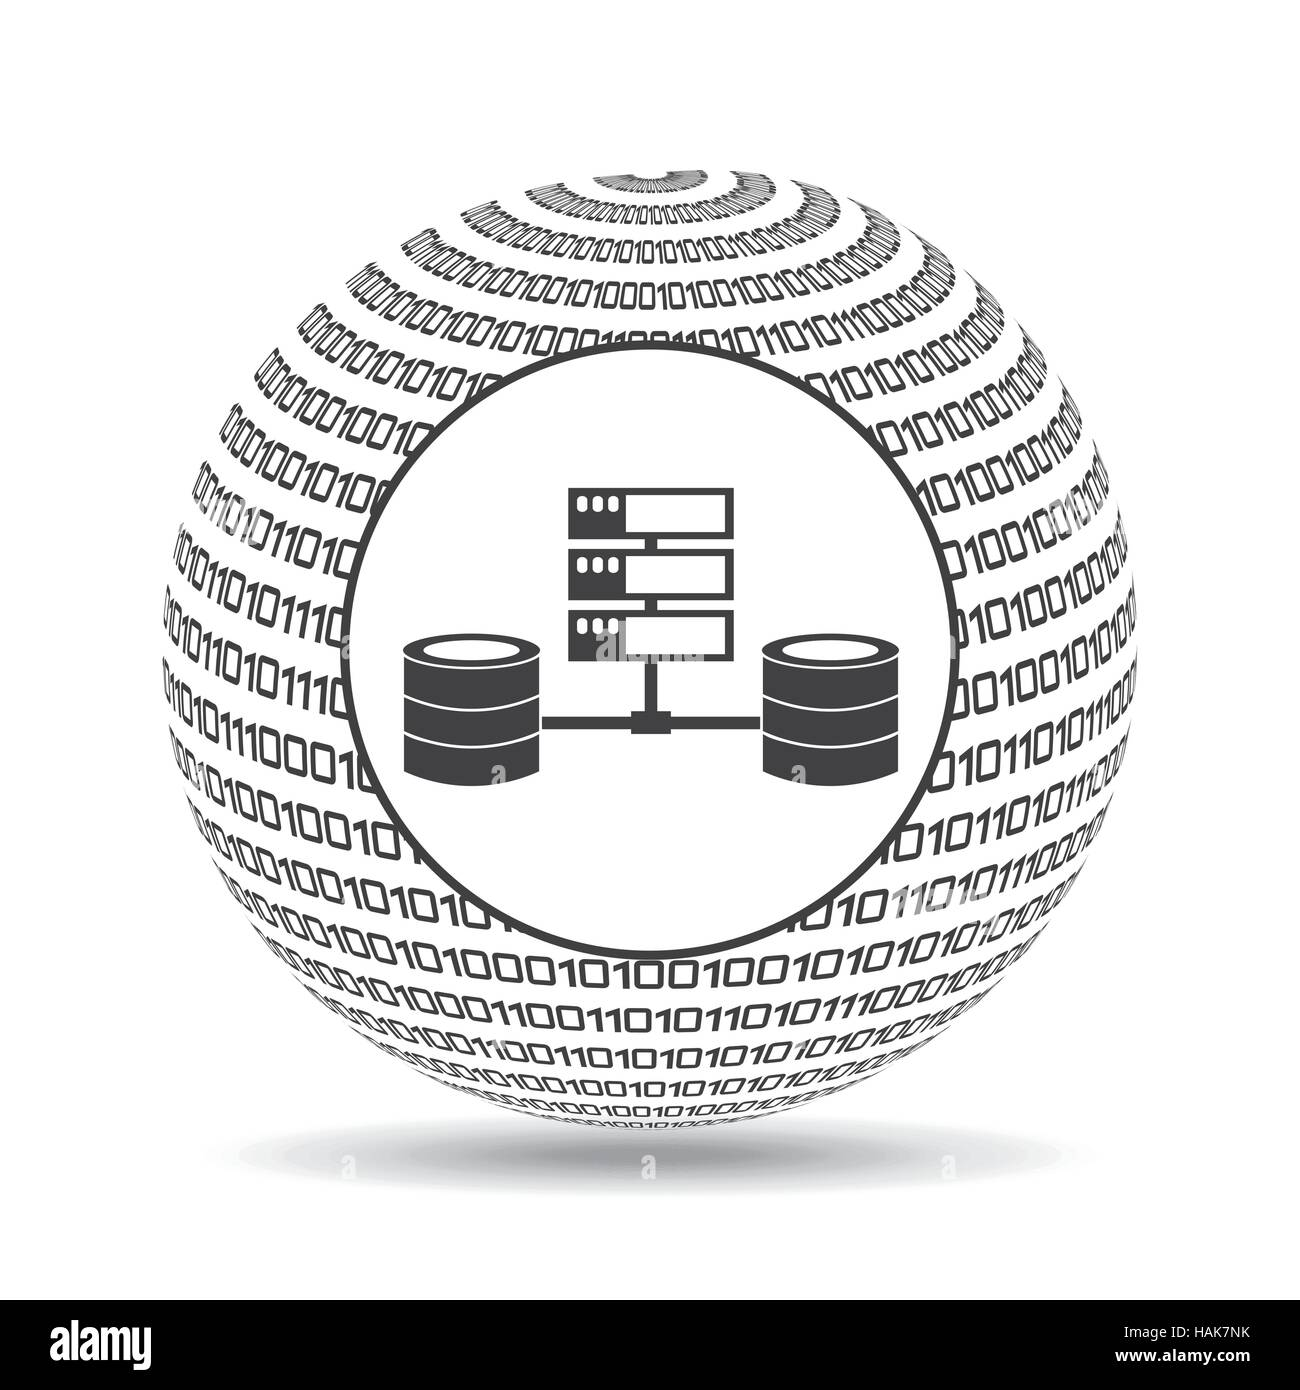 globe binary concept data system vector illustration eps 10 - Stock Image